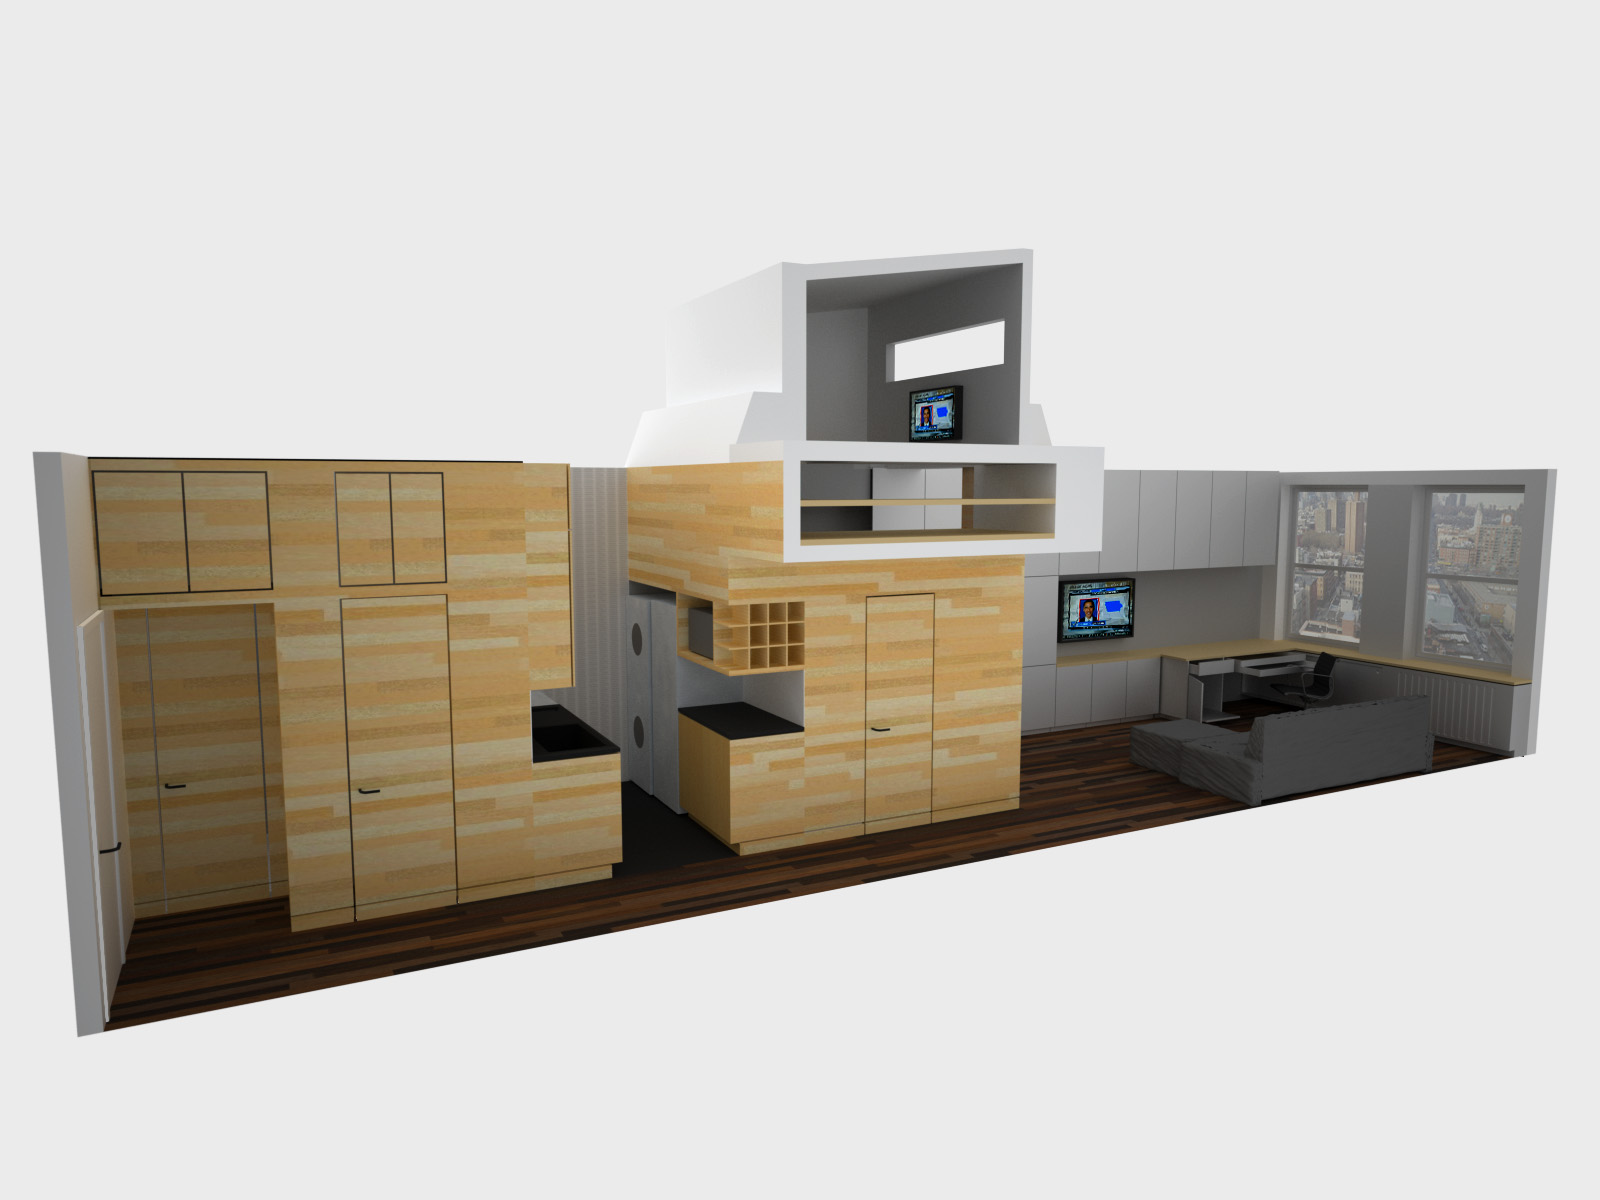 Tiny Home Designs: Space Saving Tiny Apartment, New York